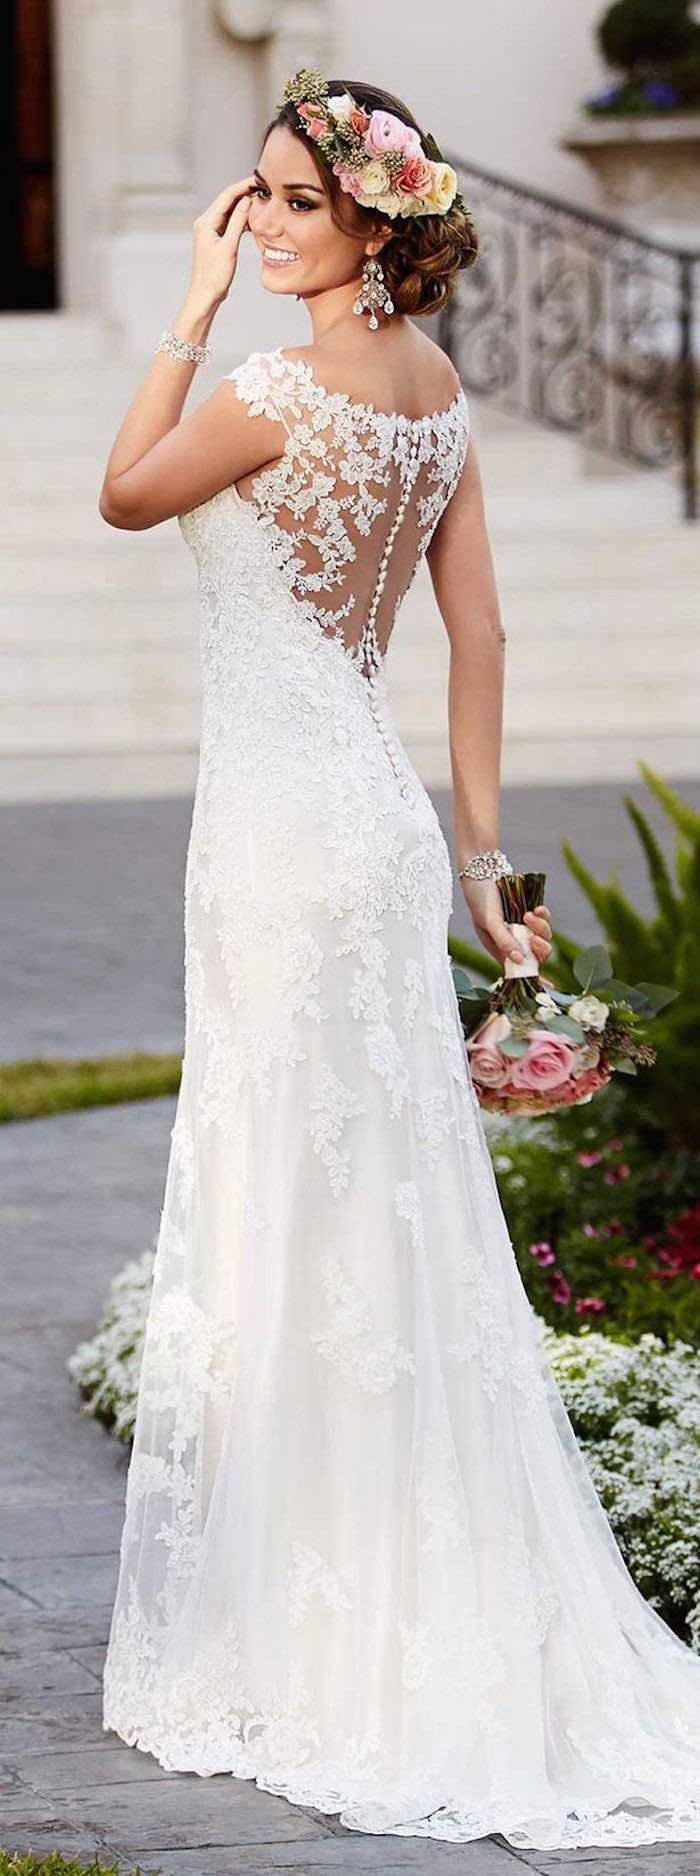 Christmas wedding dress mishaps - Gorgeous Stella York Lace Wedding Dress Looks Amazing For This Summer Floral Crown Photo Via